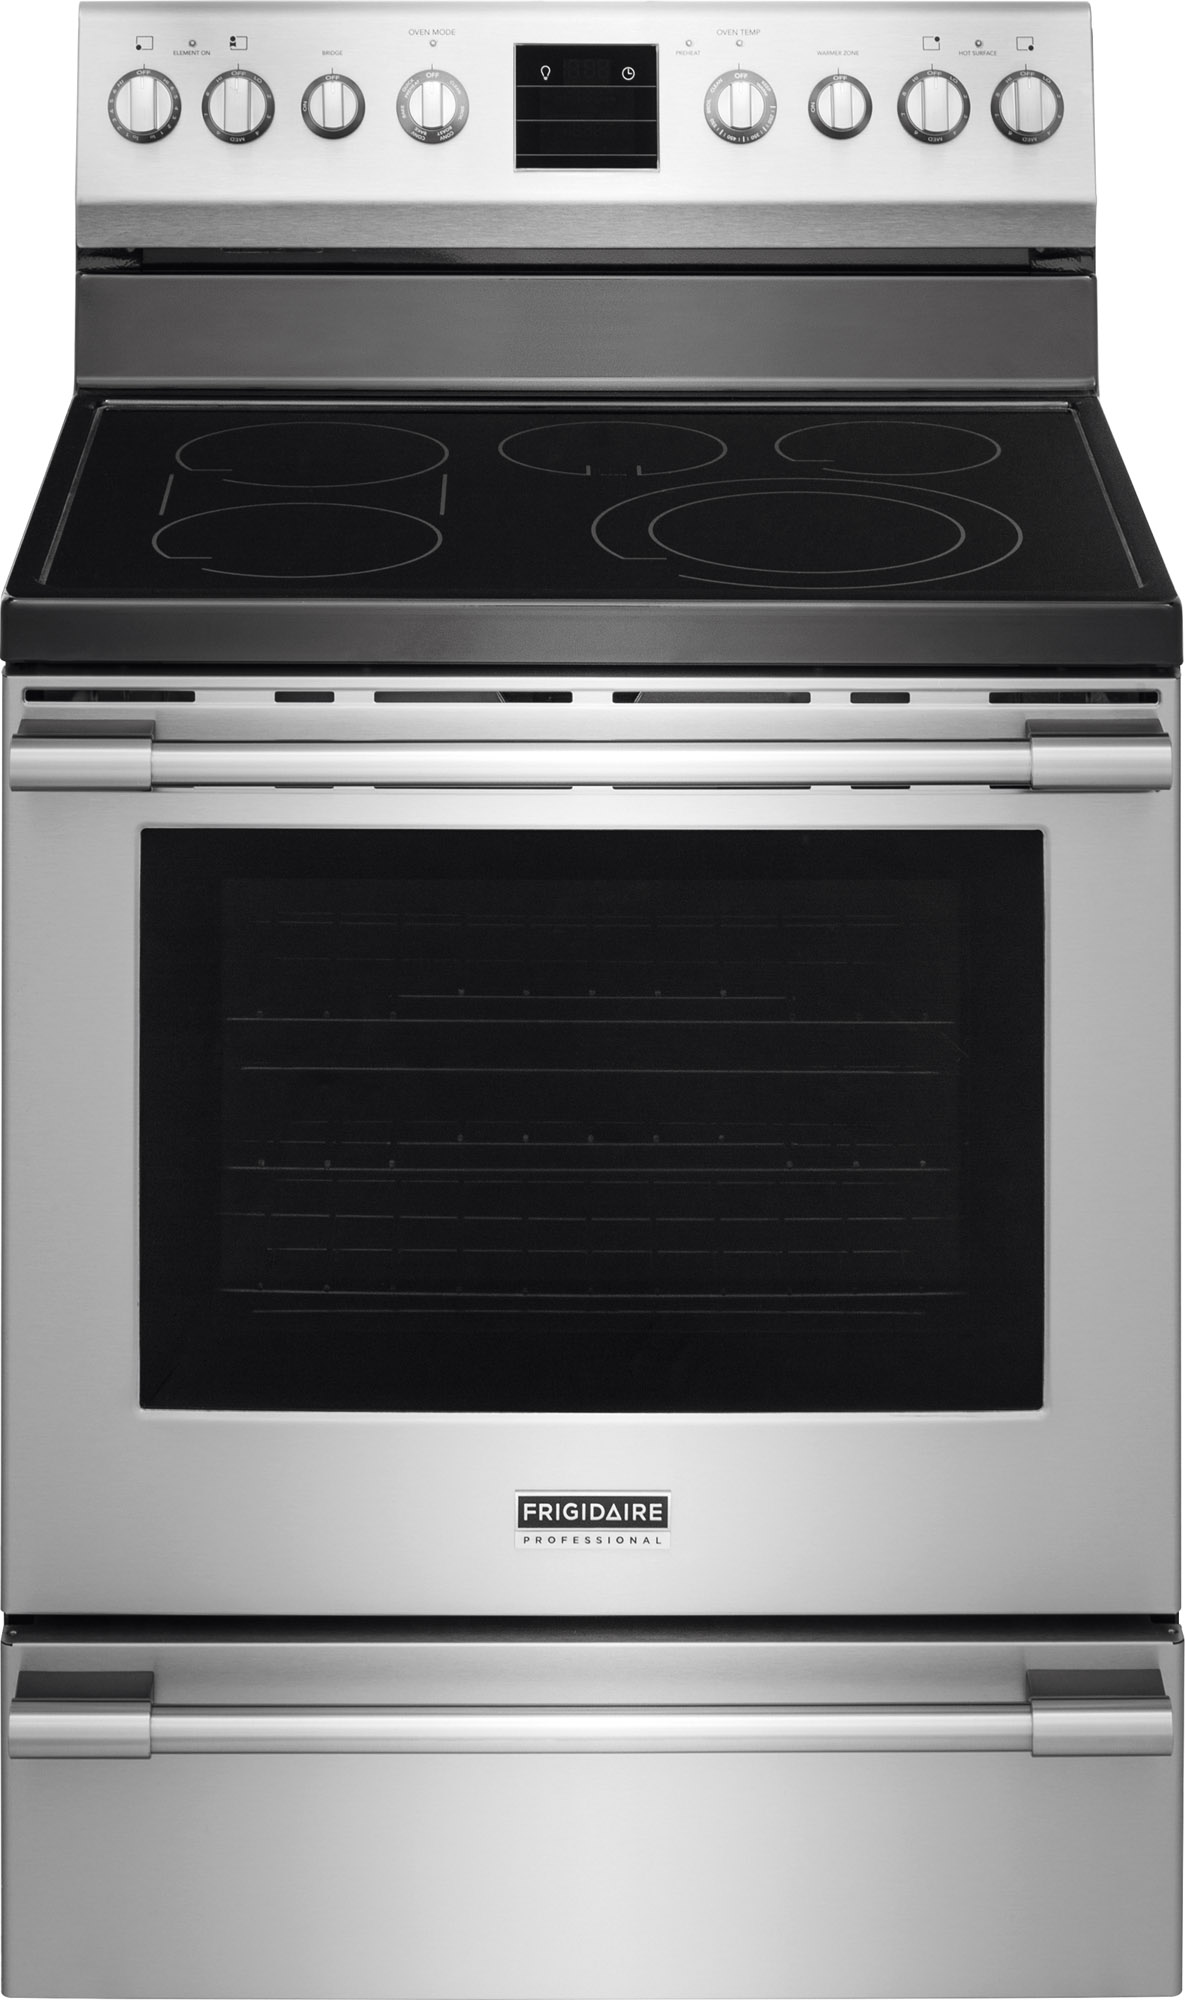 With Newest Suite Of Appliances Frigidaire Professional